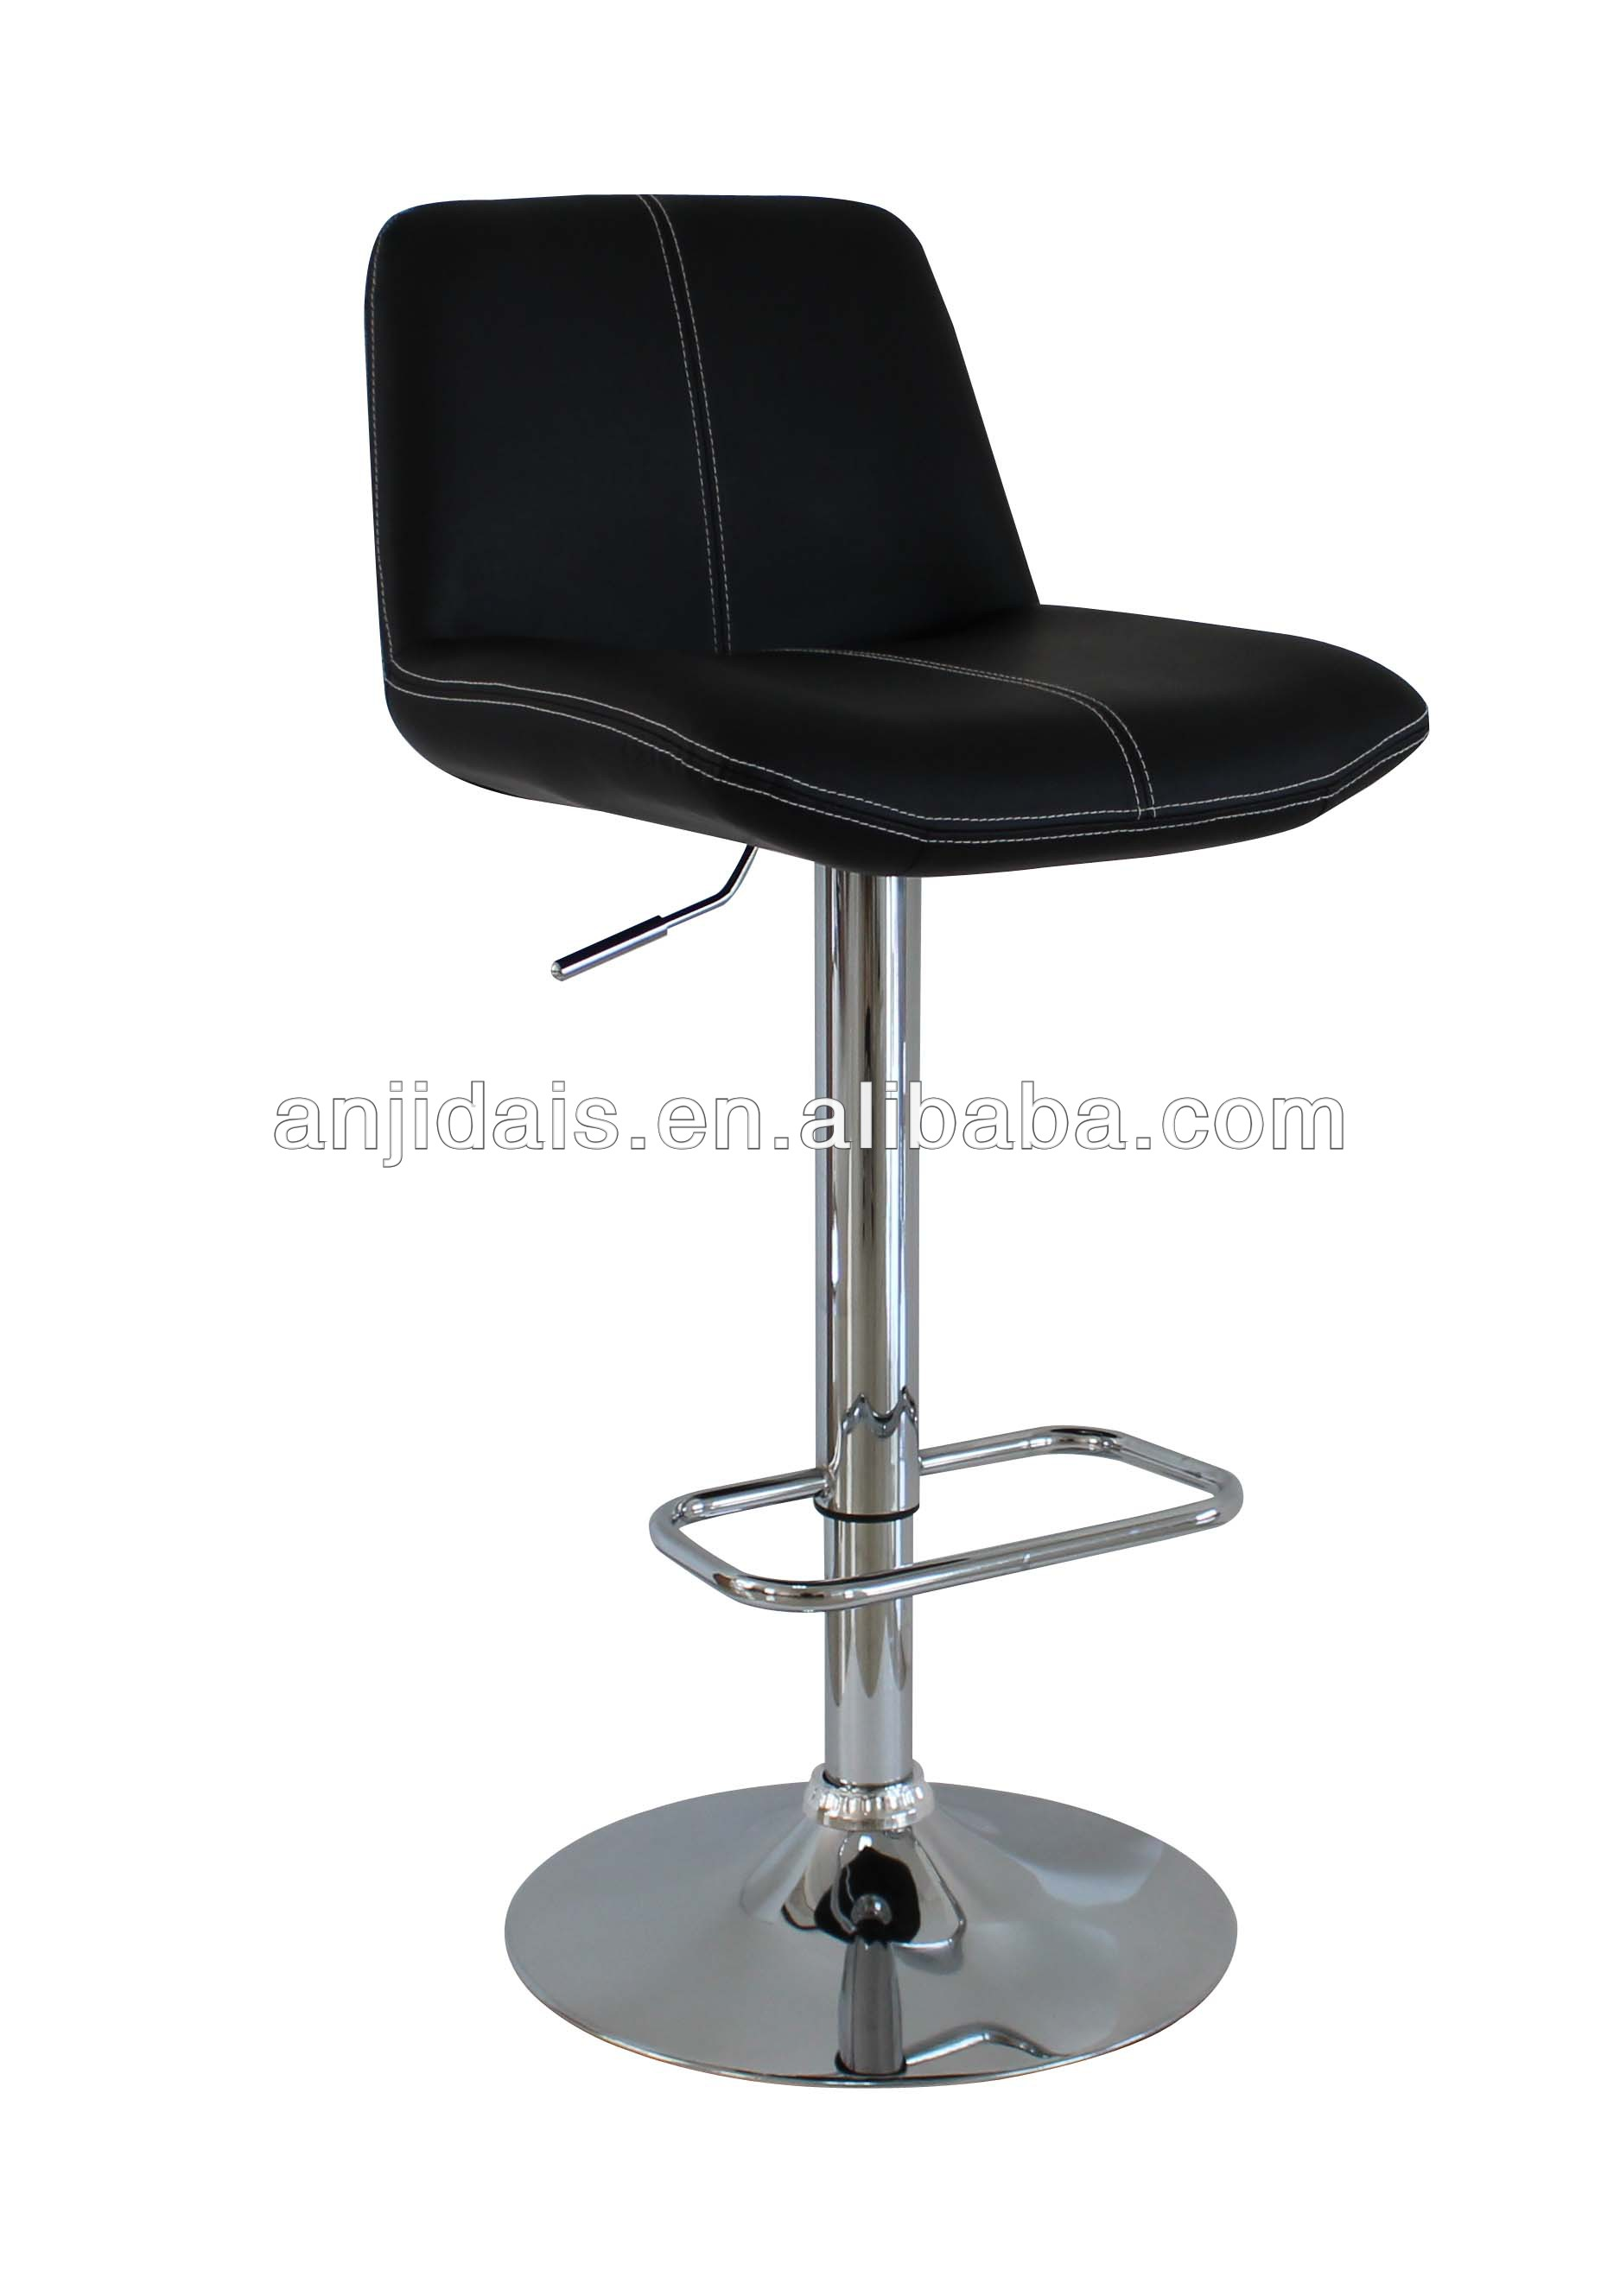 Cowhide Bar Stools Cowhide Bar Stools Suppliers and Manufacturers